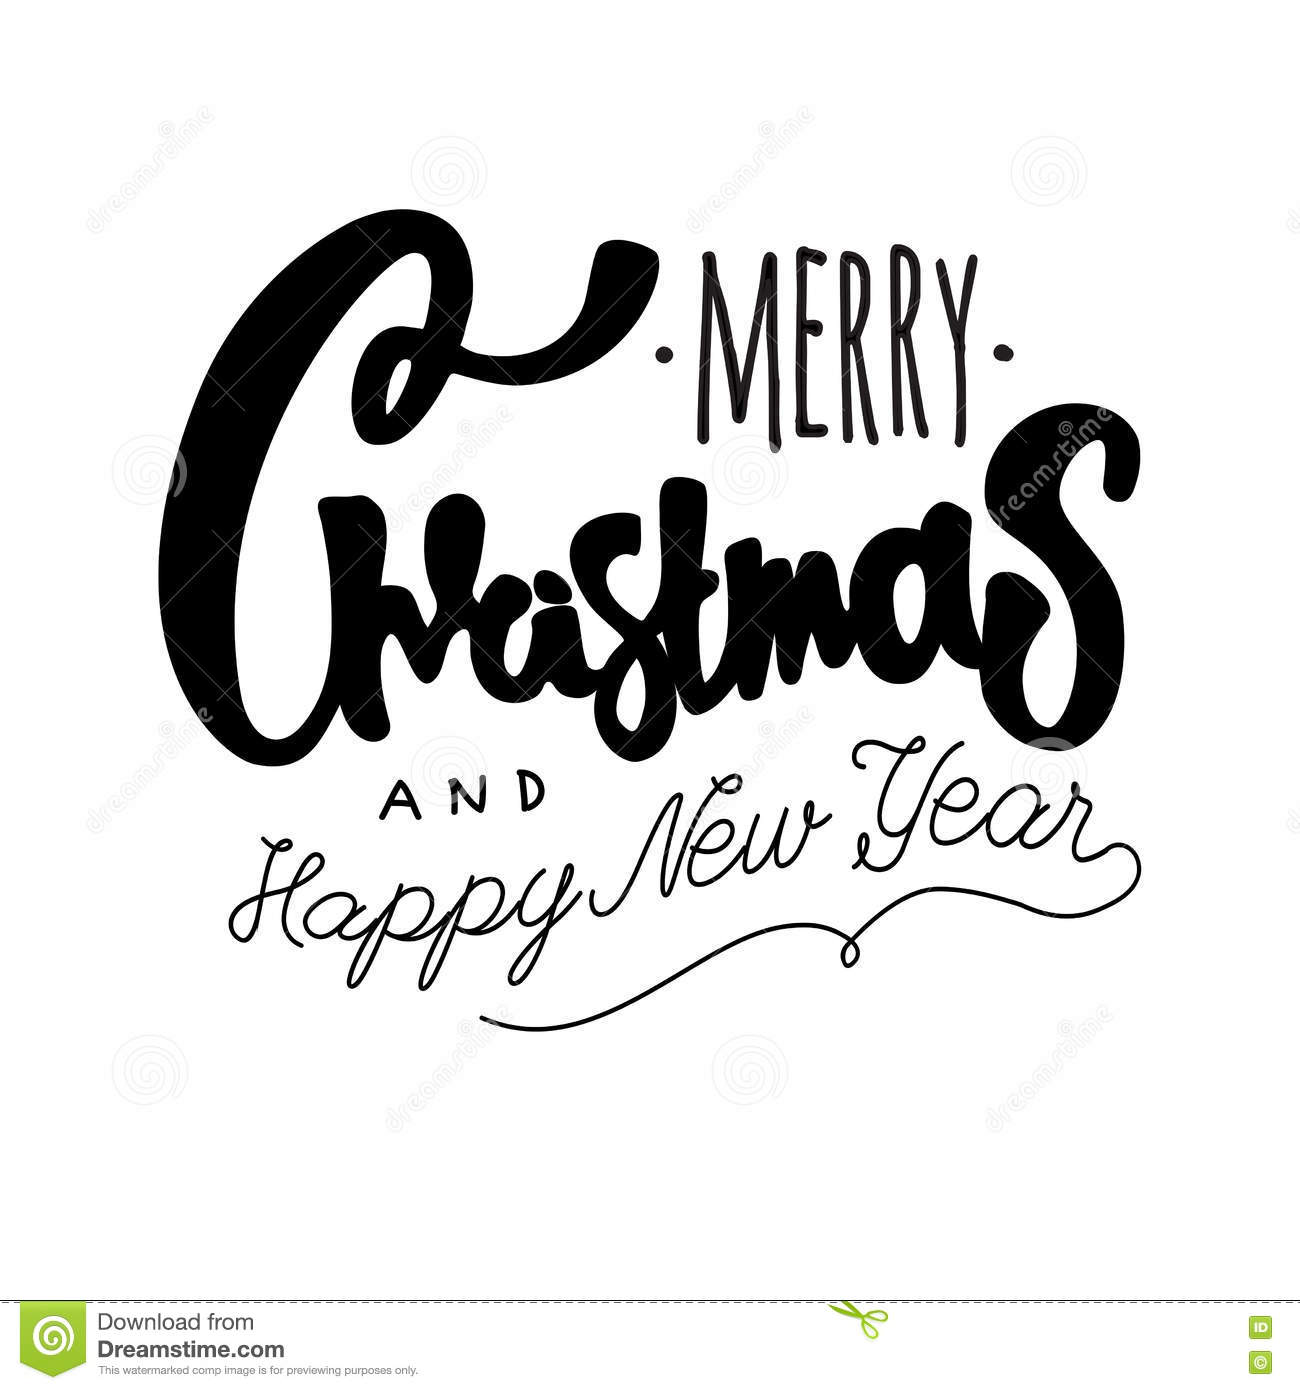 Merry Christmas And Happy New Year Hand Drawn Retro